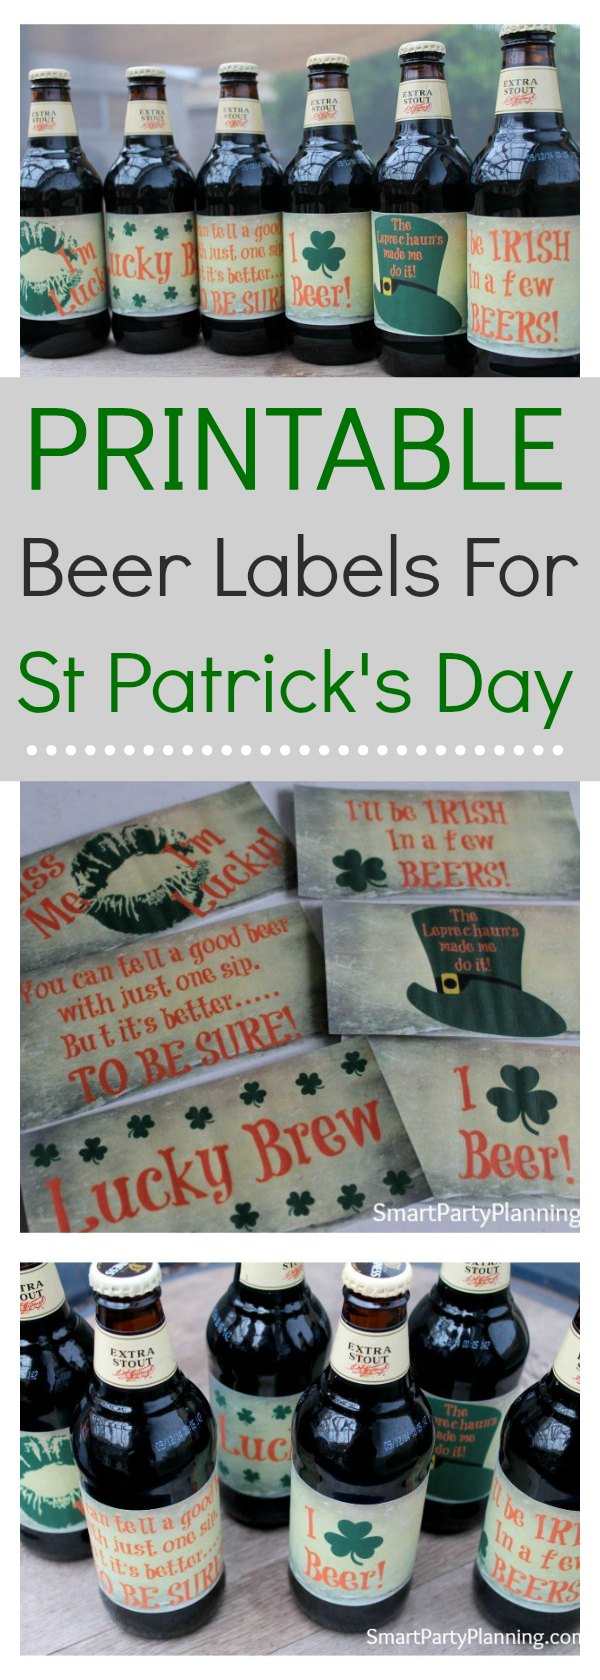 The perfect set of homebrew beer labels that you can use for your St Patrick's day celebrations. There is no need to wonder what you will put on your beer bottles now, when you can undertake a bit of DIY with the decorating.  All the hard work has been done making the beer, now have some fun with the labels too.  It's the perfect way to show off your home brew. #Homebrewbeerlabels #StPatricksday #DIY #Fun